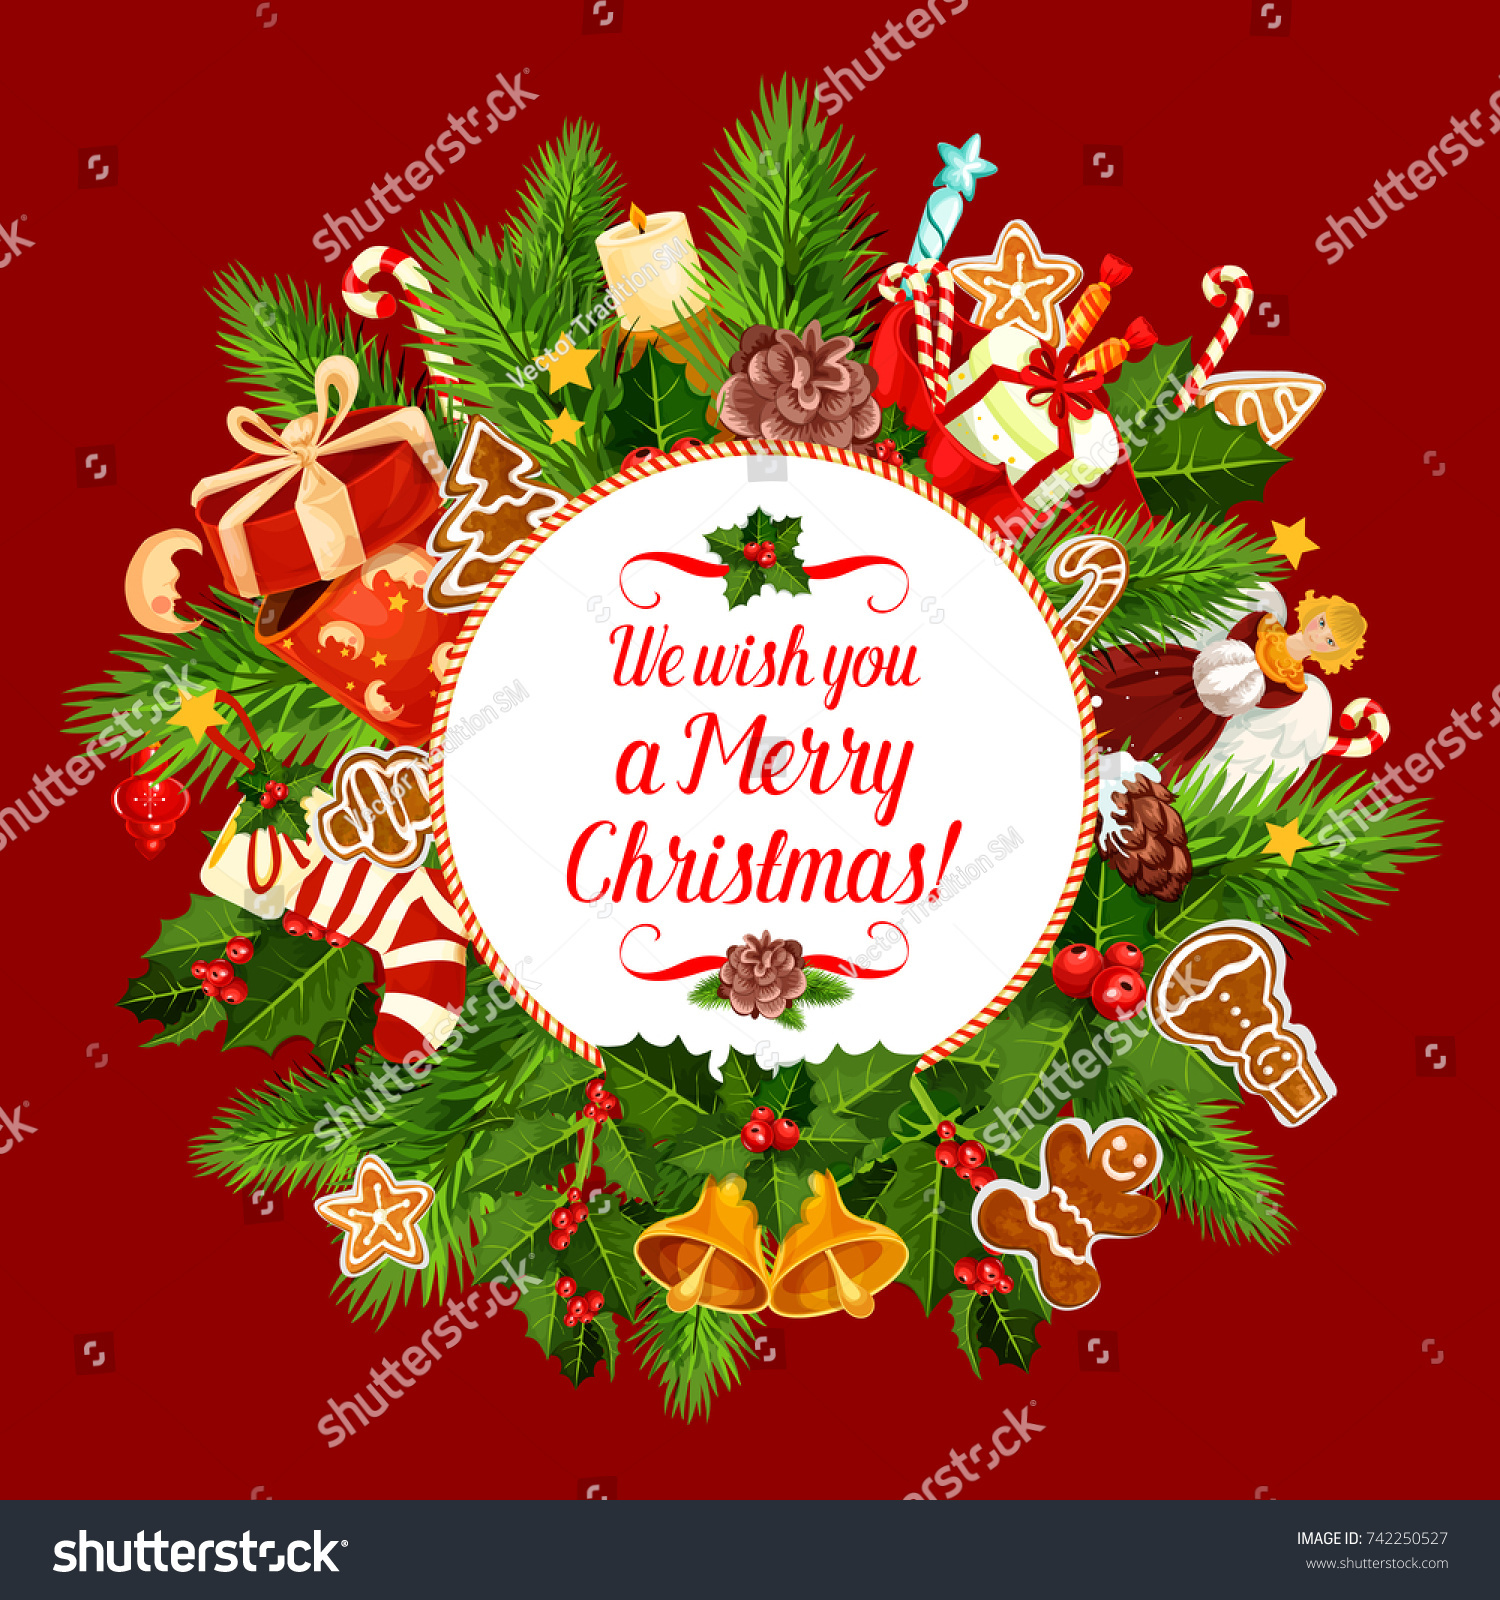 merry christmas greeting card design for happy holidays wishes or new year winter season celebration